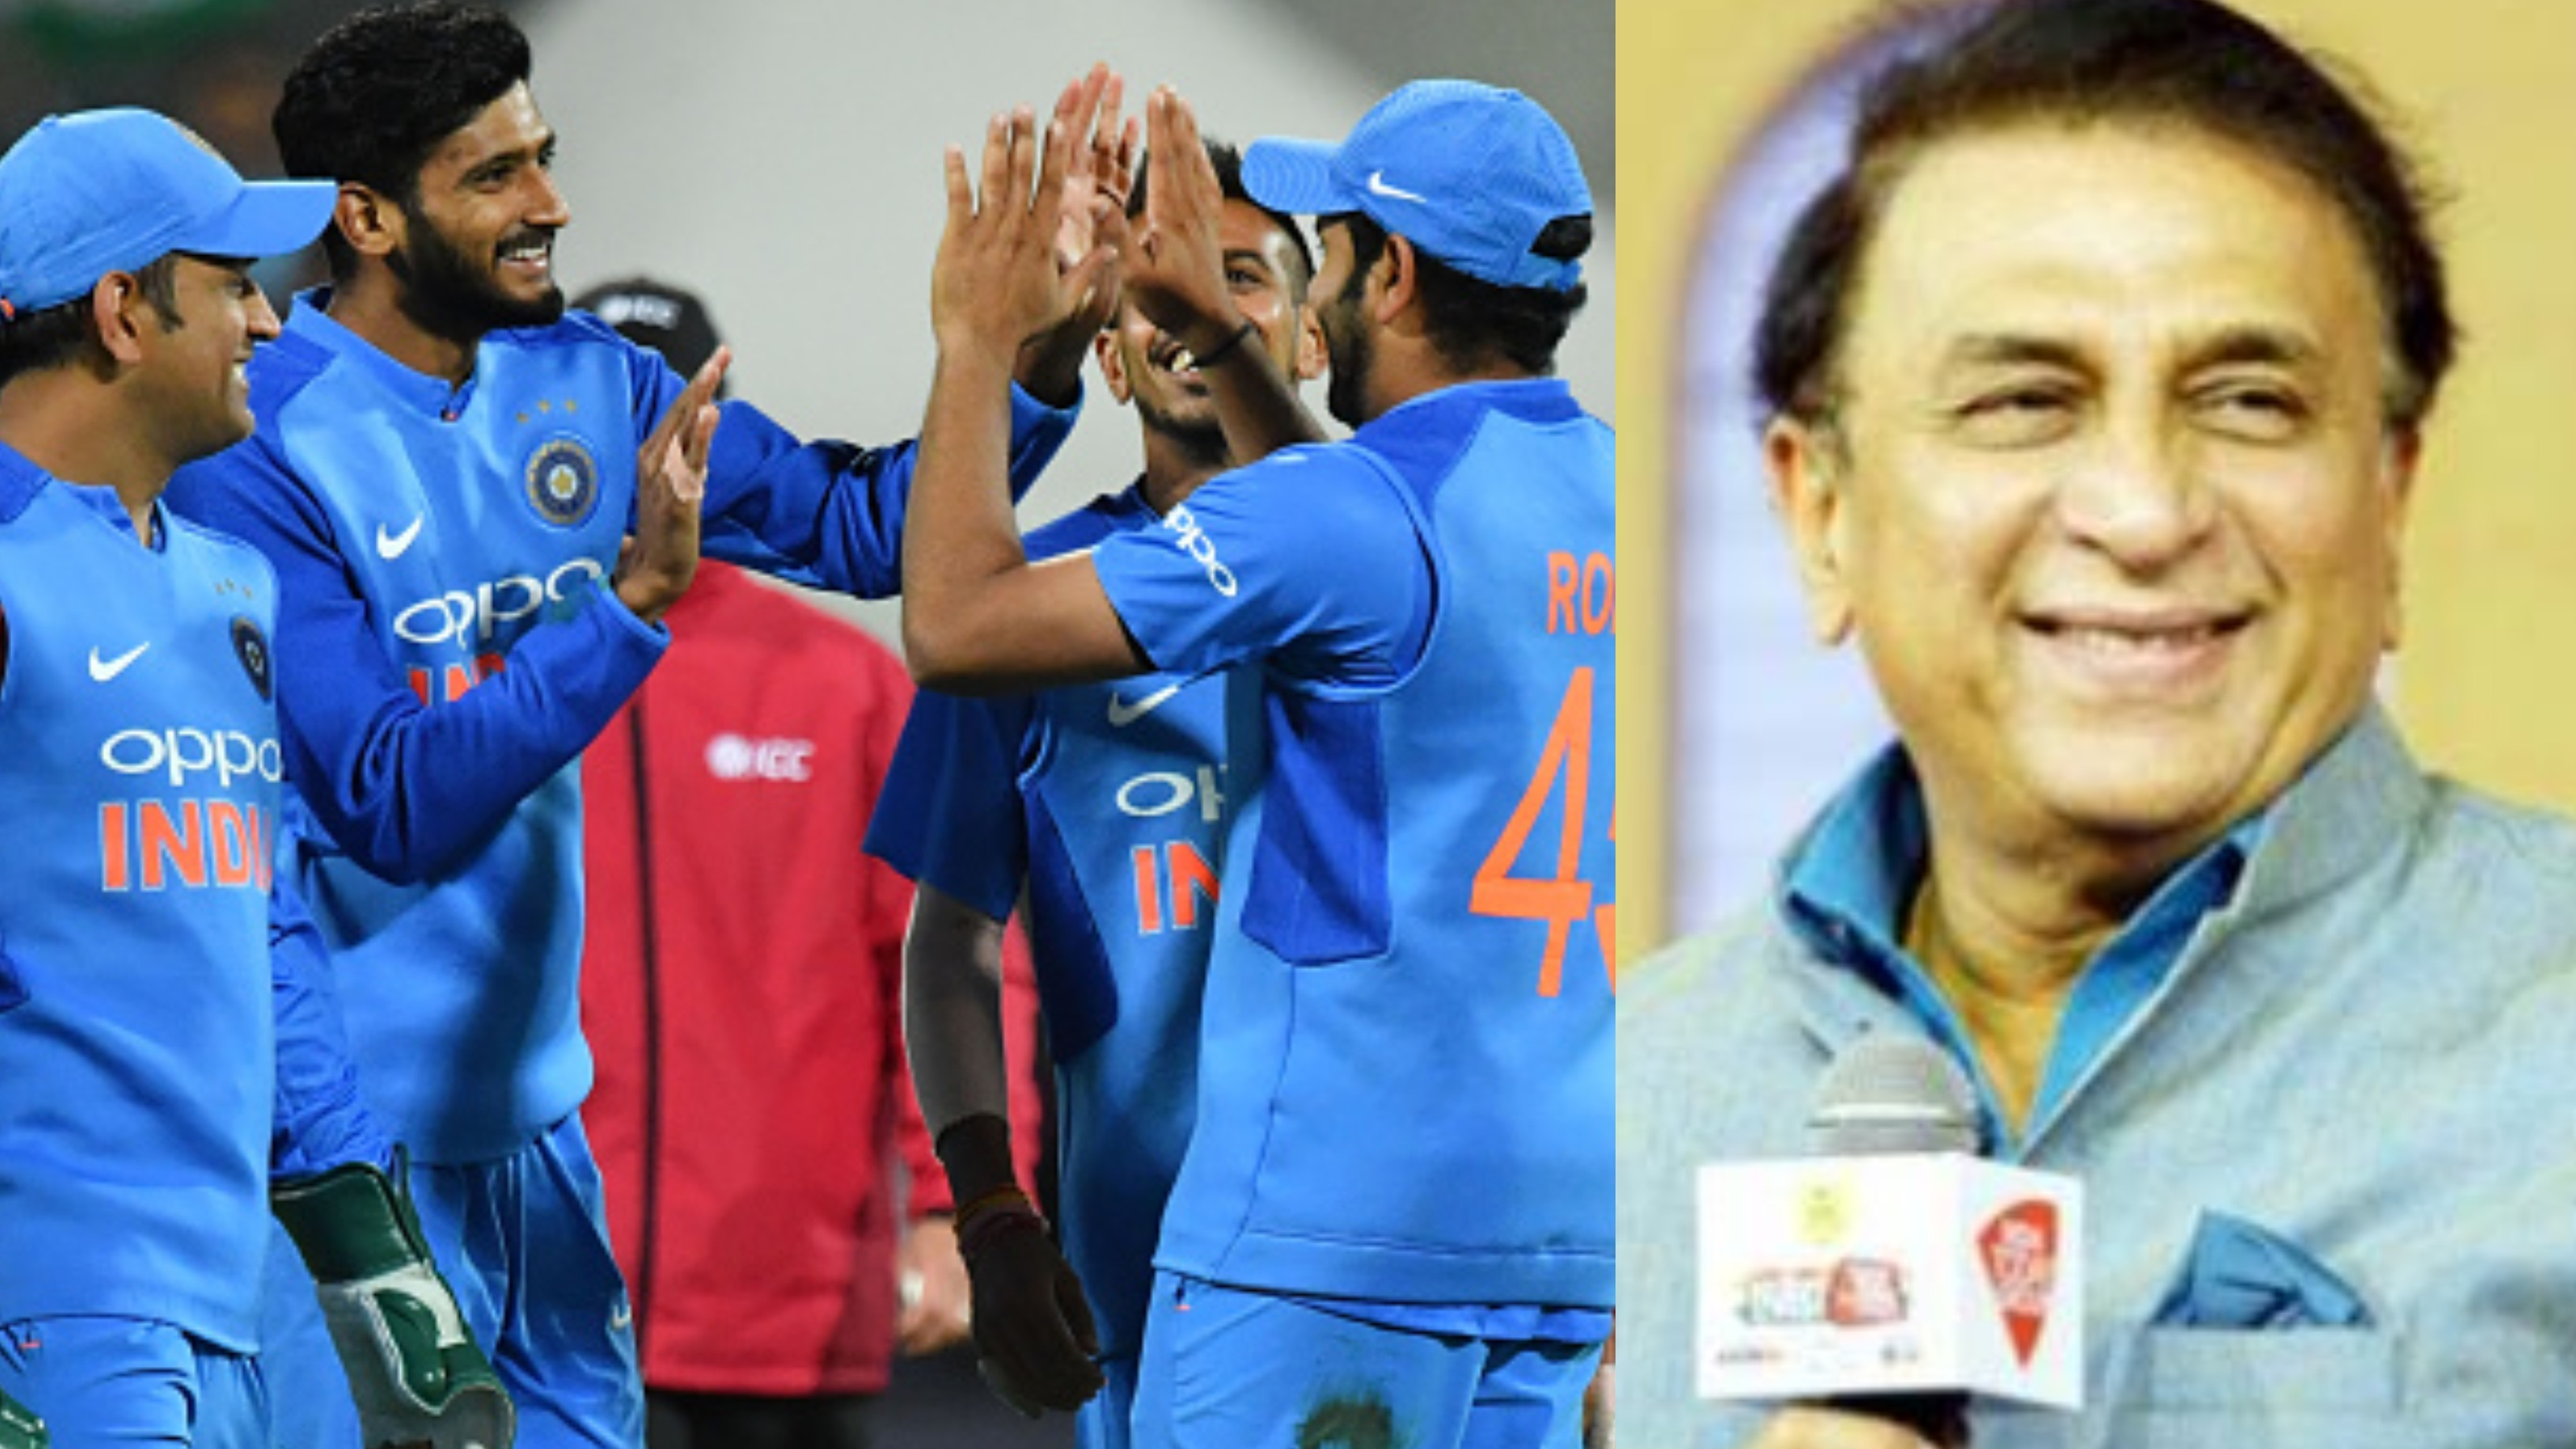 NZ v IND 2019: Sunil Gavaskar suggests India to experiment with playing XI rather than focusing on victory